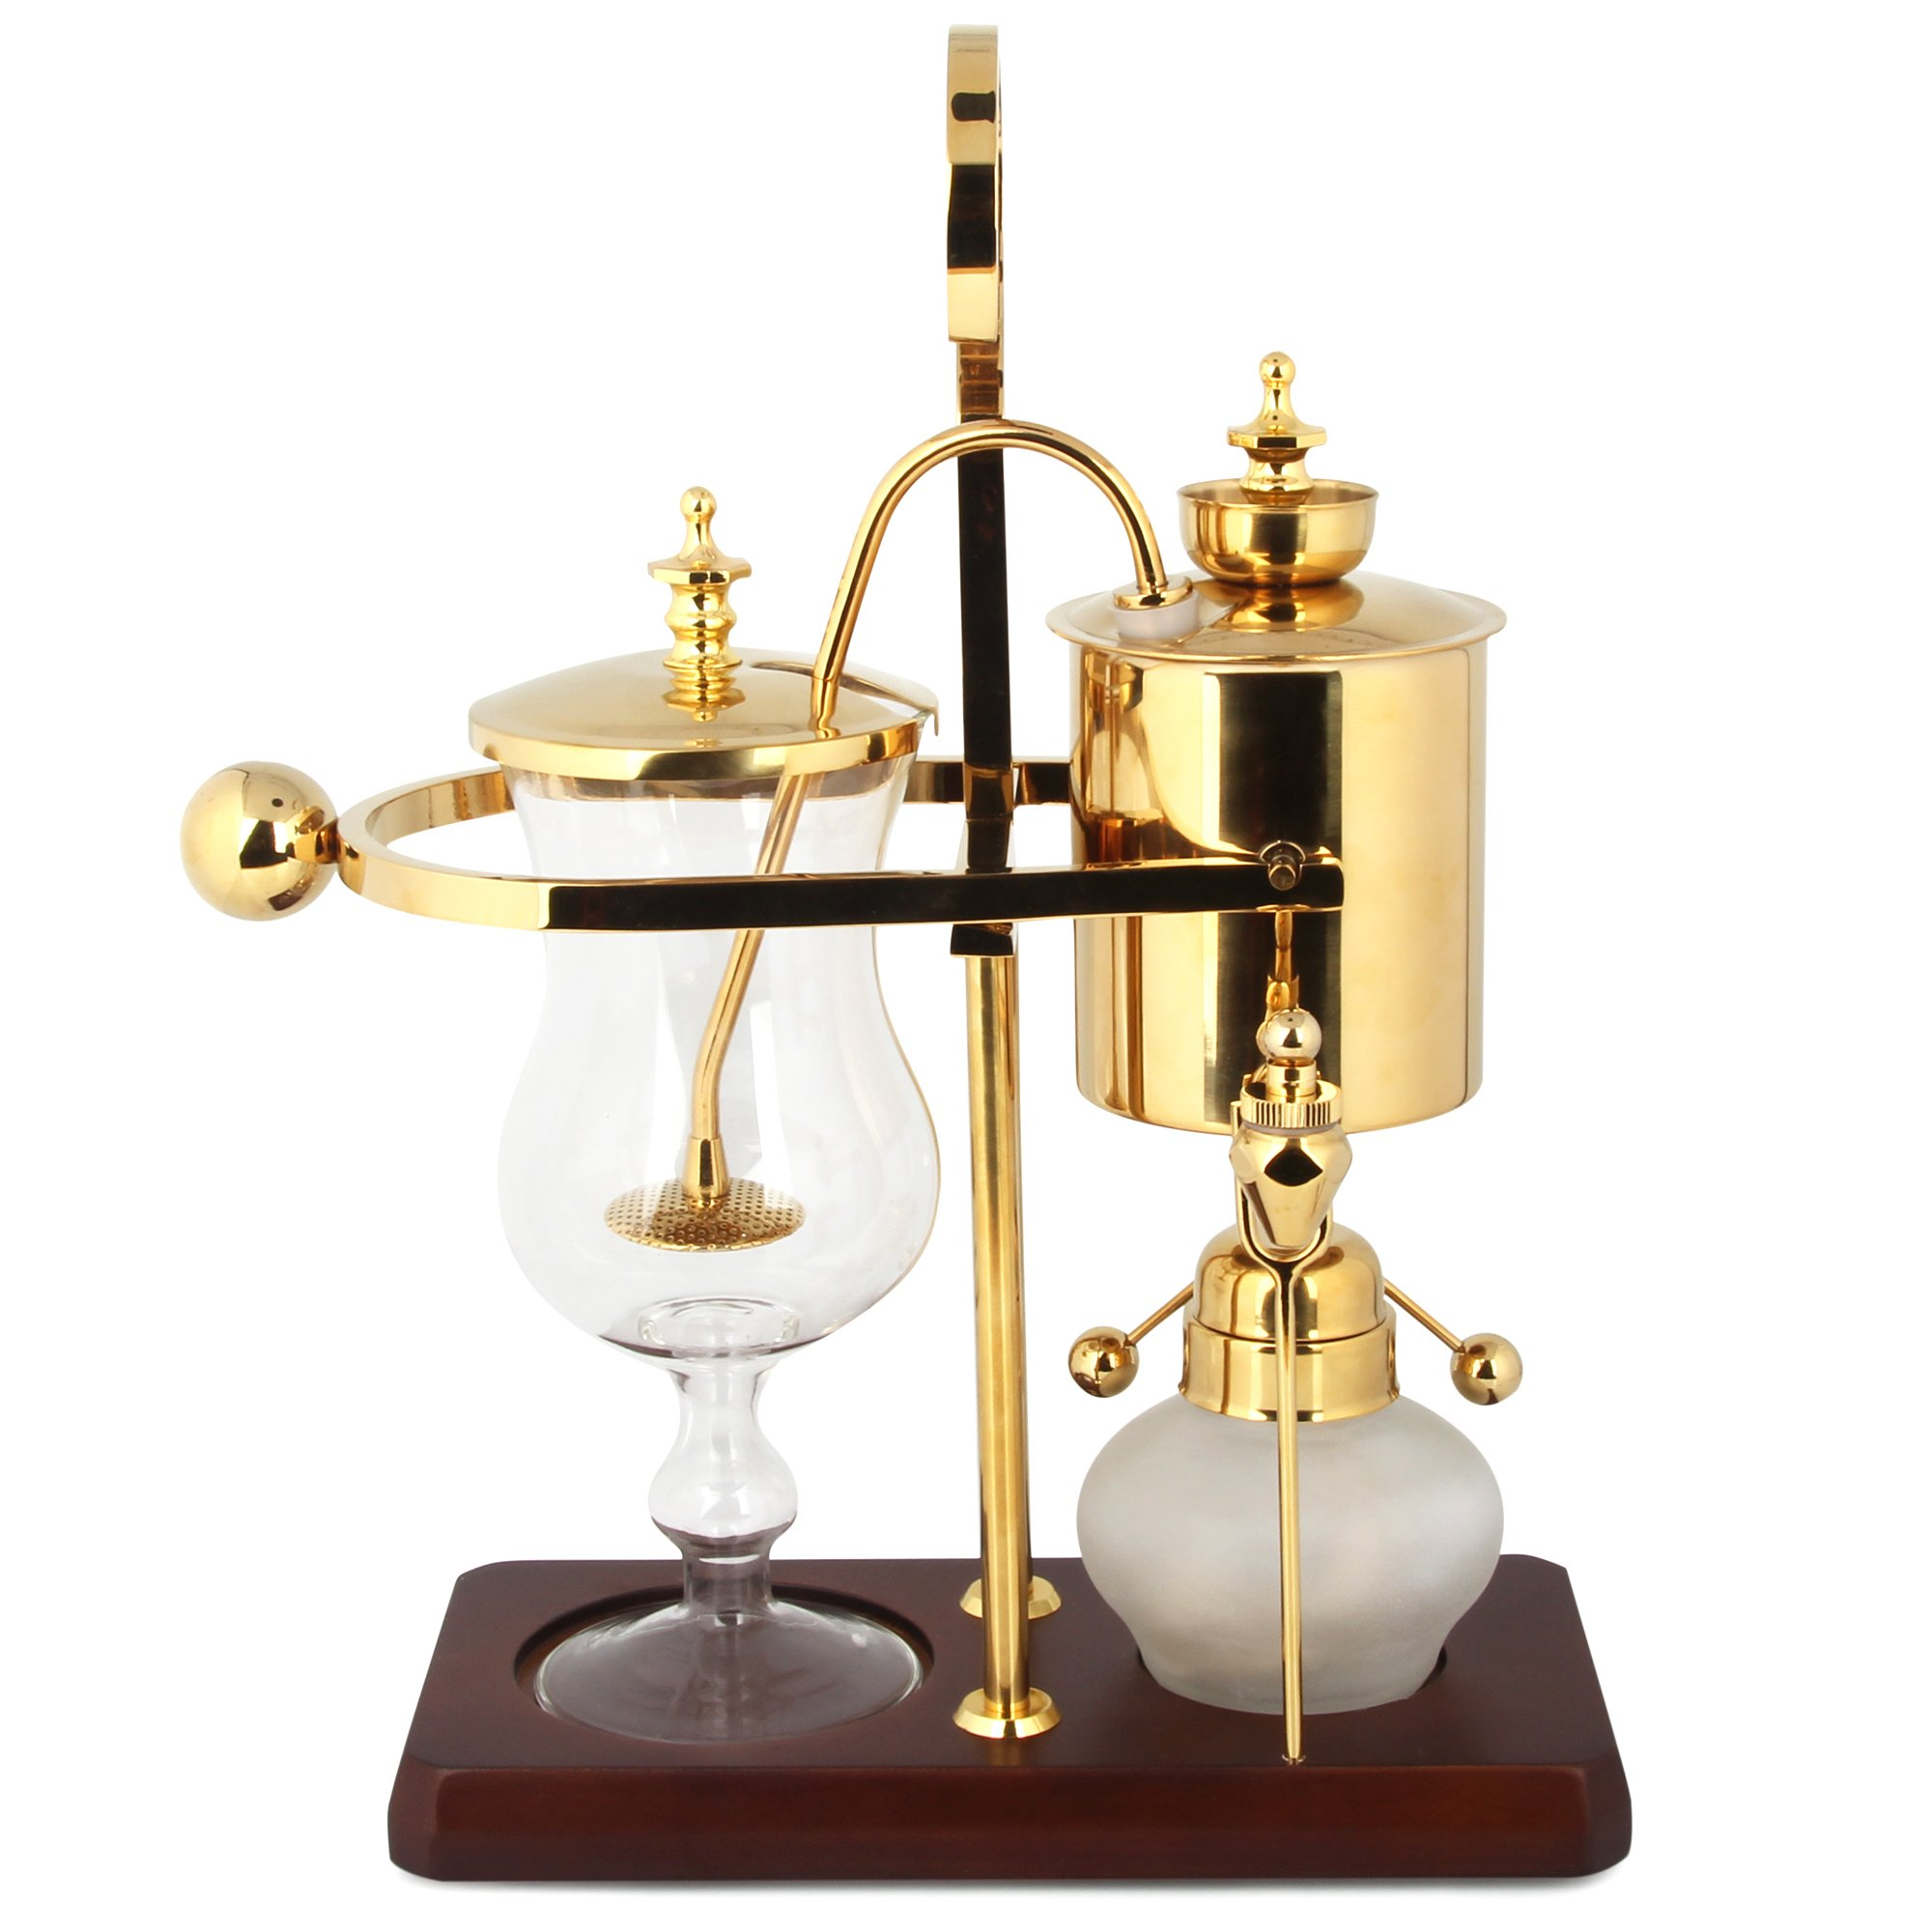 Kendal Balance Syphon Siphon Coffee Maker Gold Color, 1 set